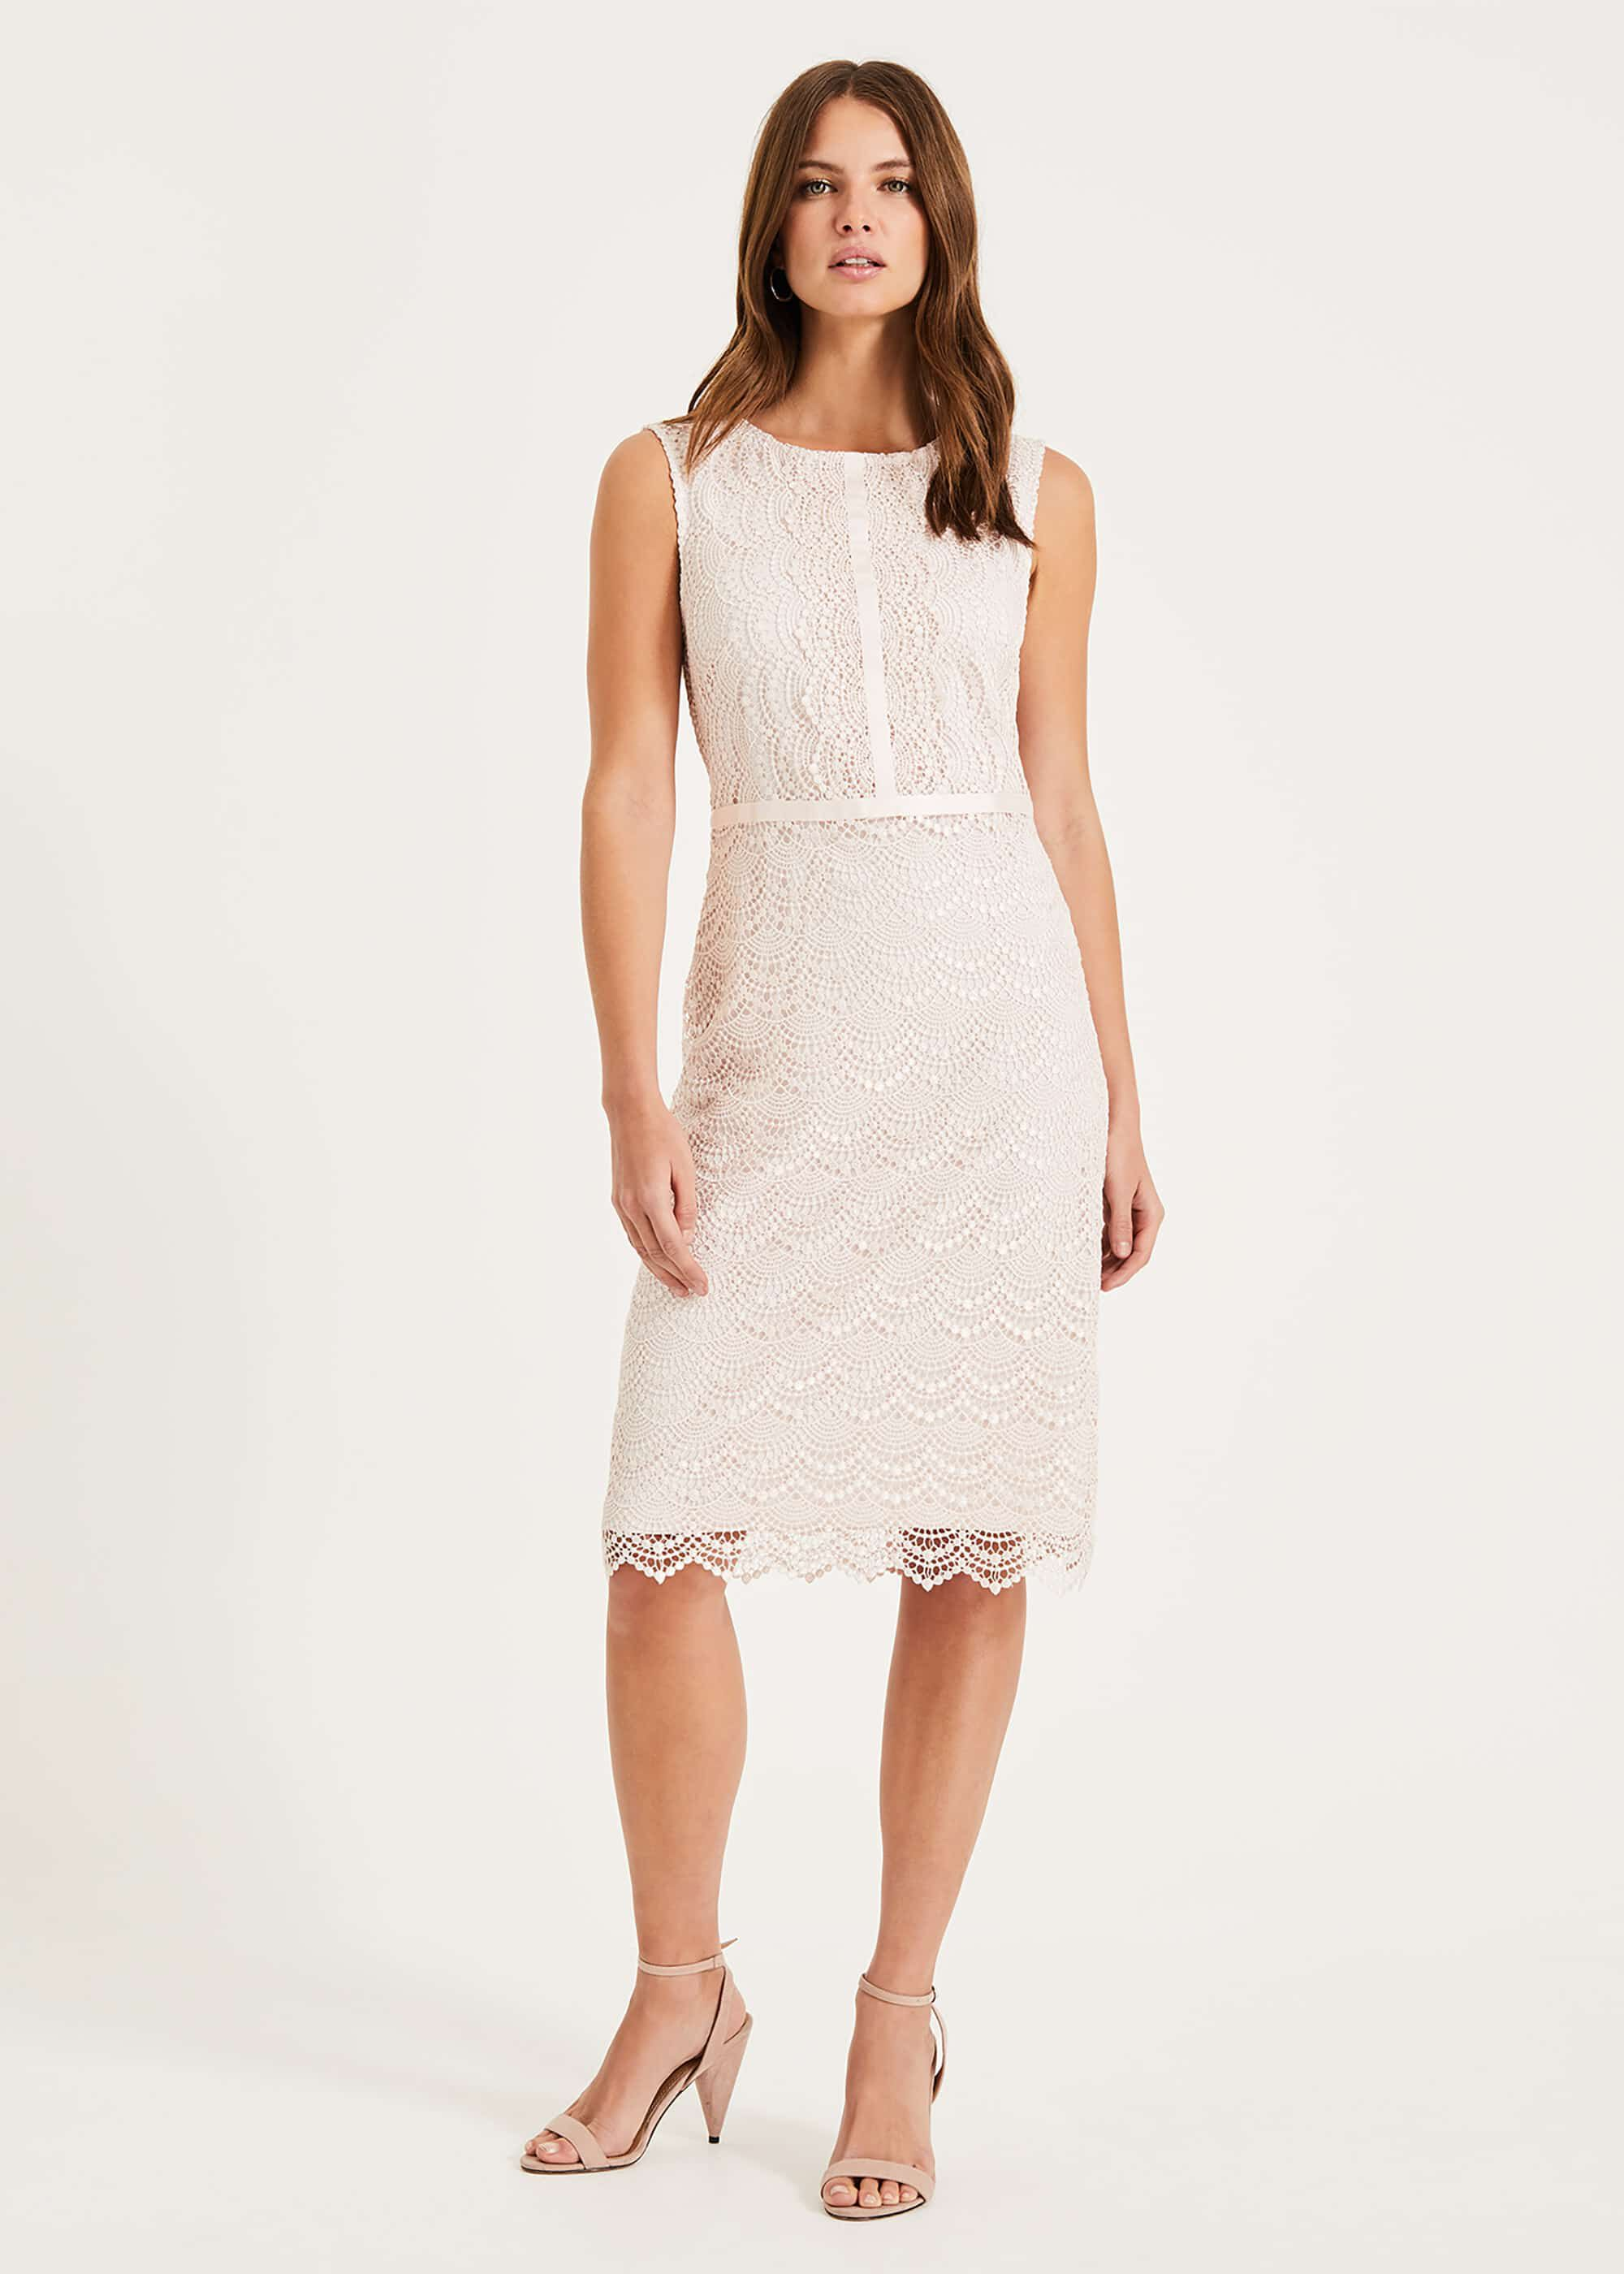 Phase Eight Helga Scallop Lace Dress, Pink, Shift